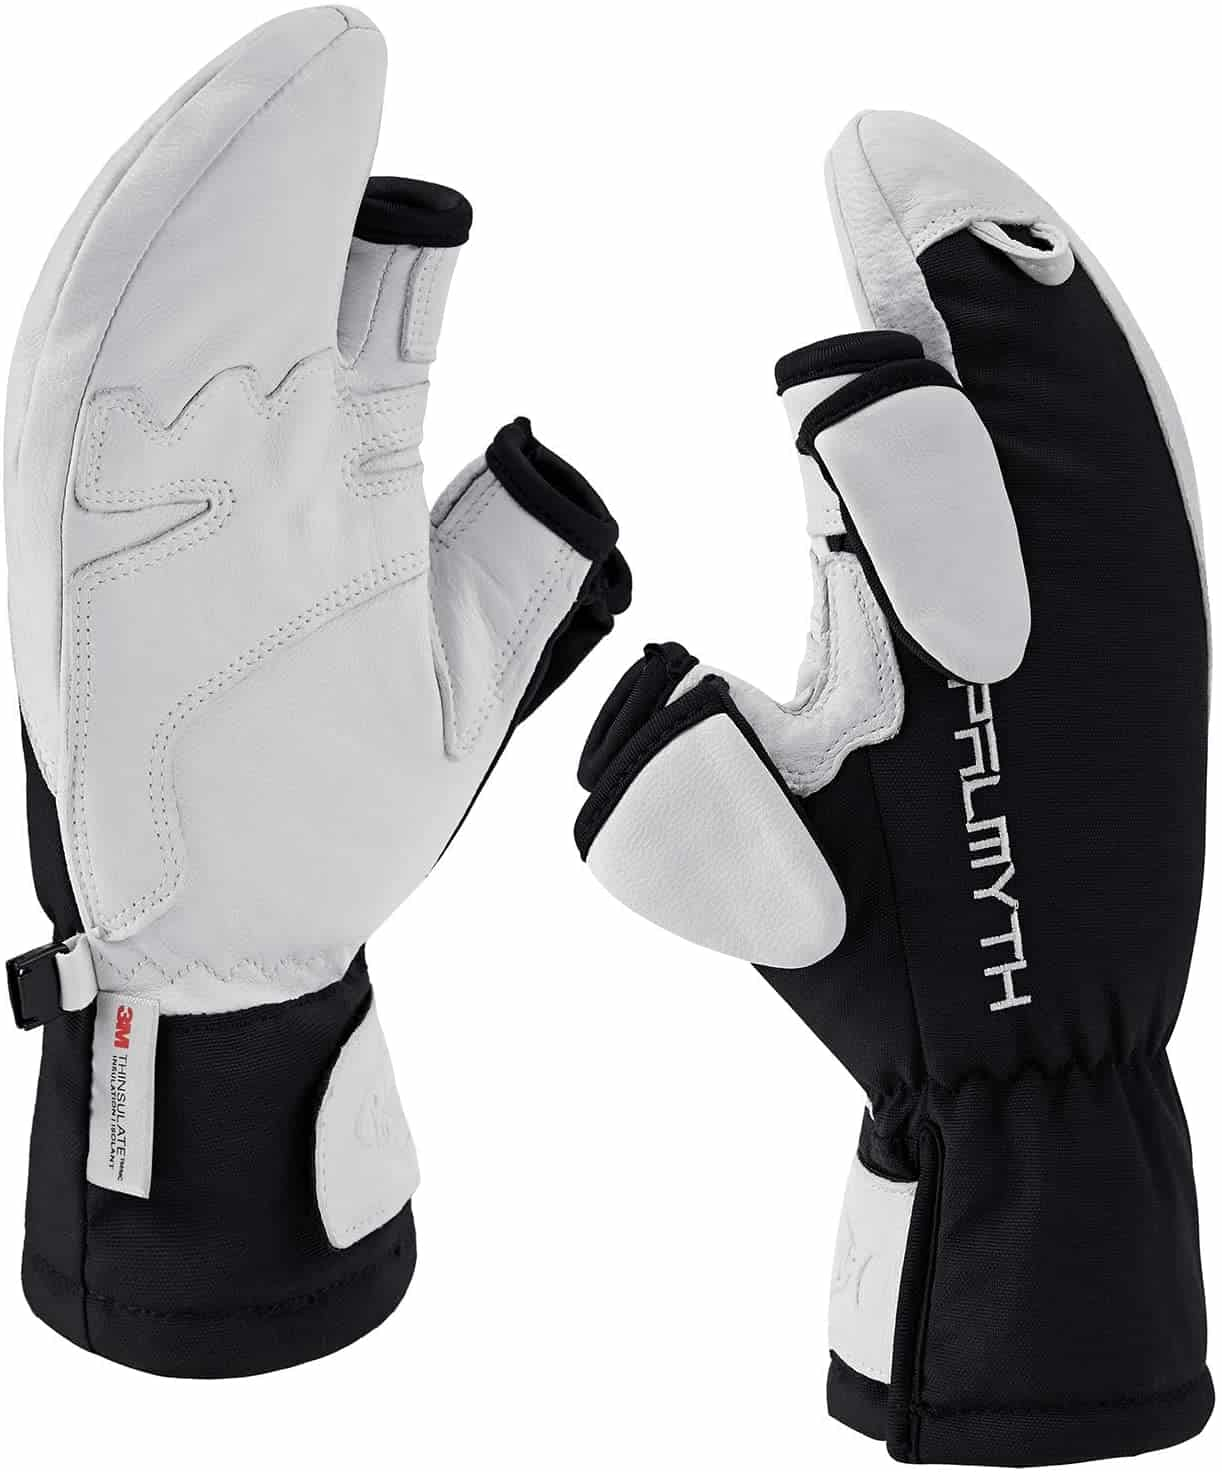 Convertible Ice Fishing Gloves by Palmyth